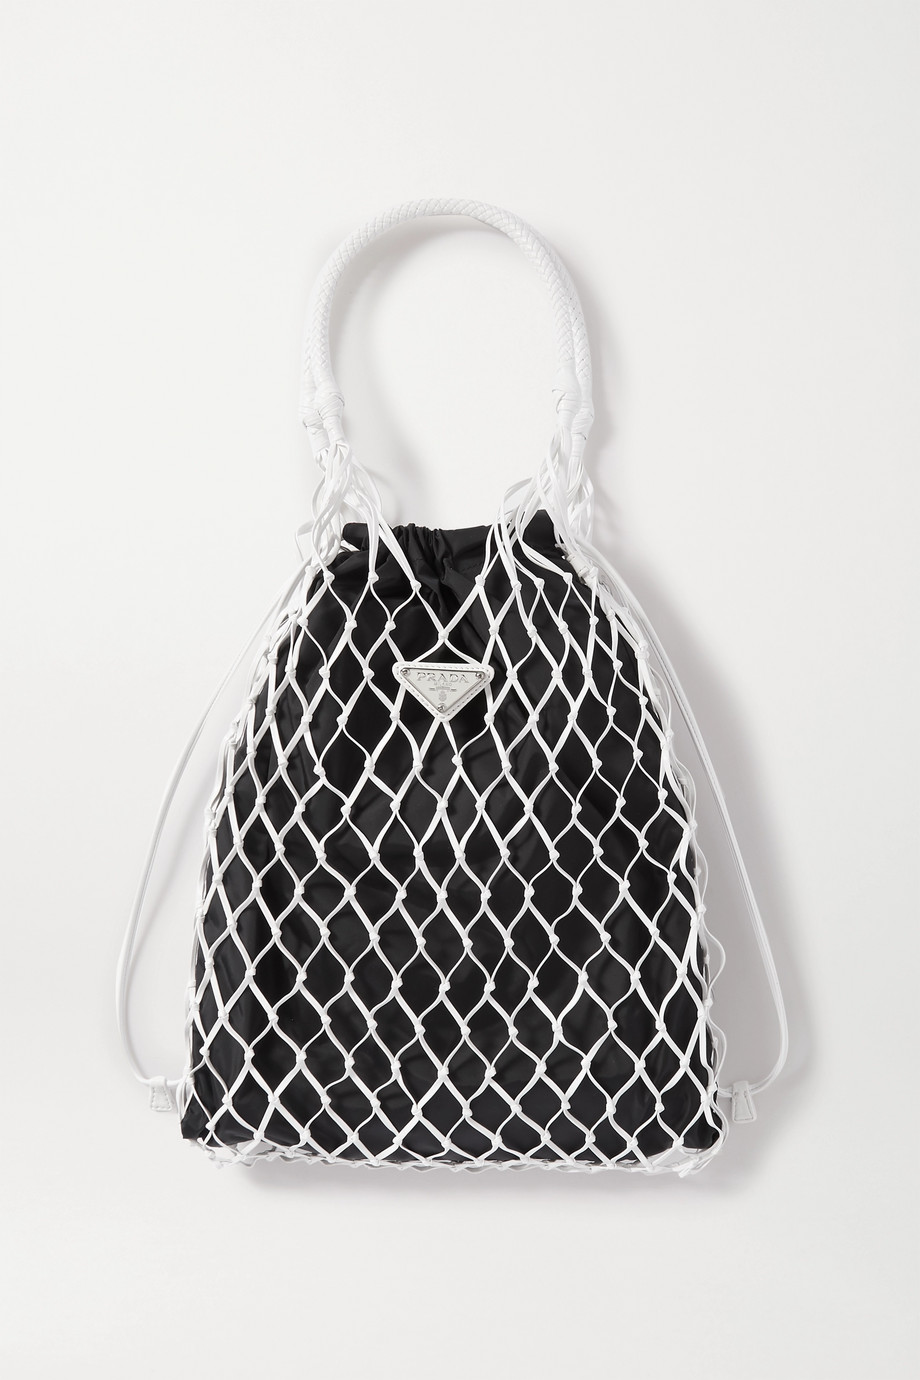 Prada String nylon and leather tote